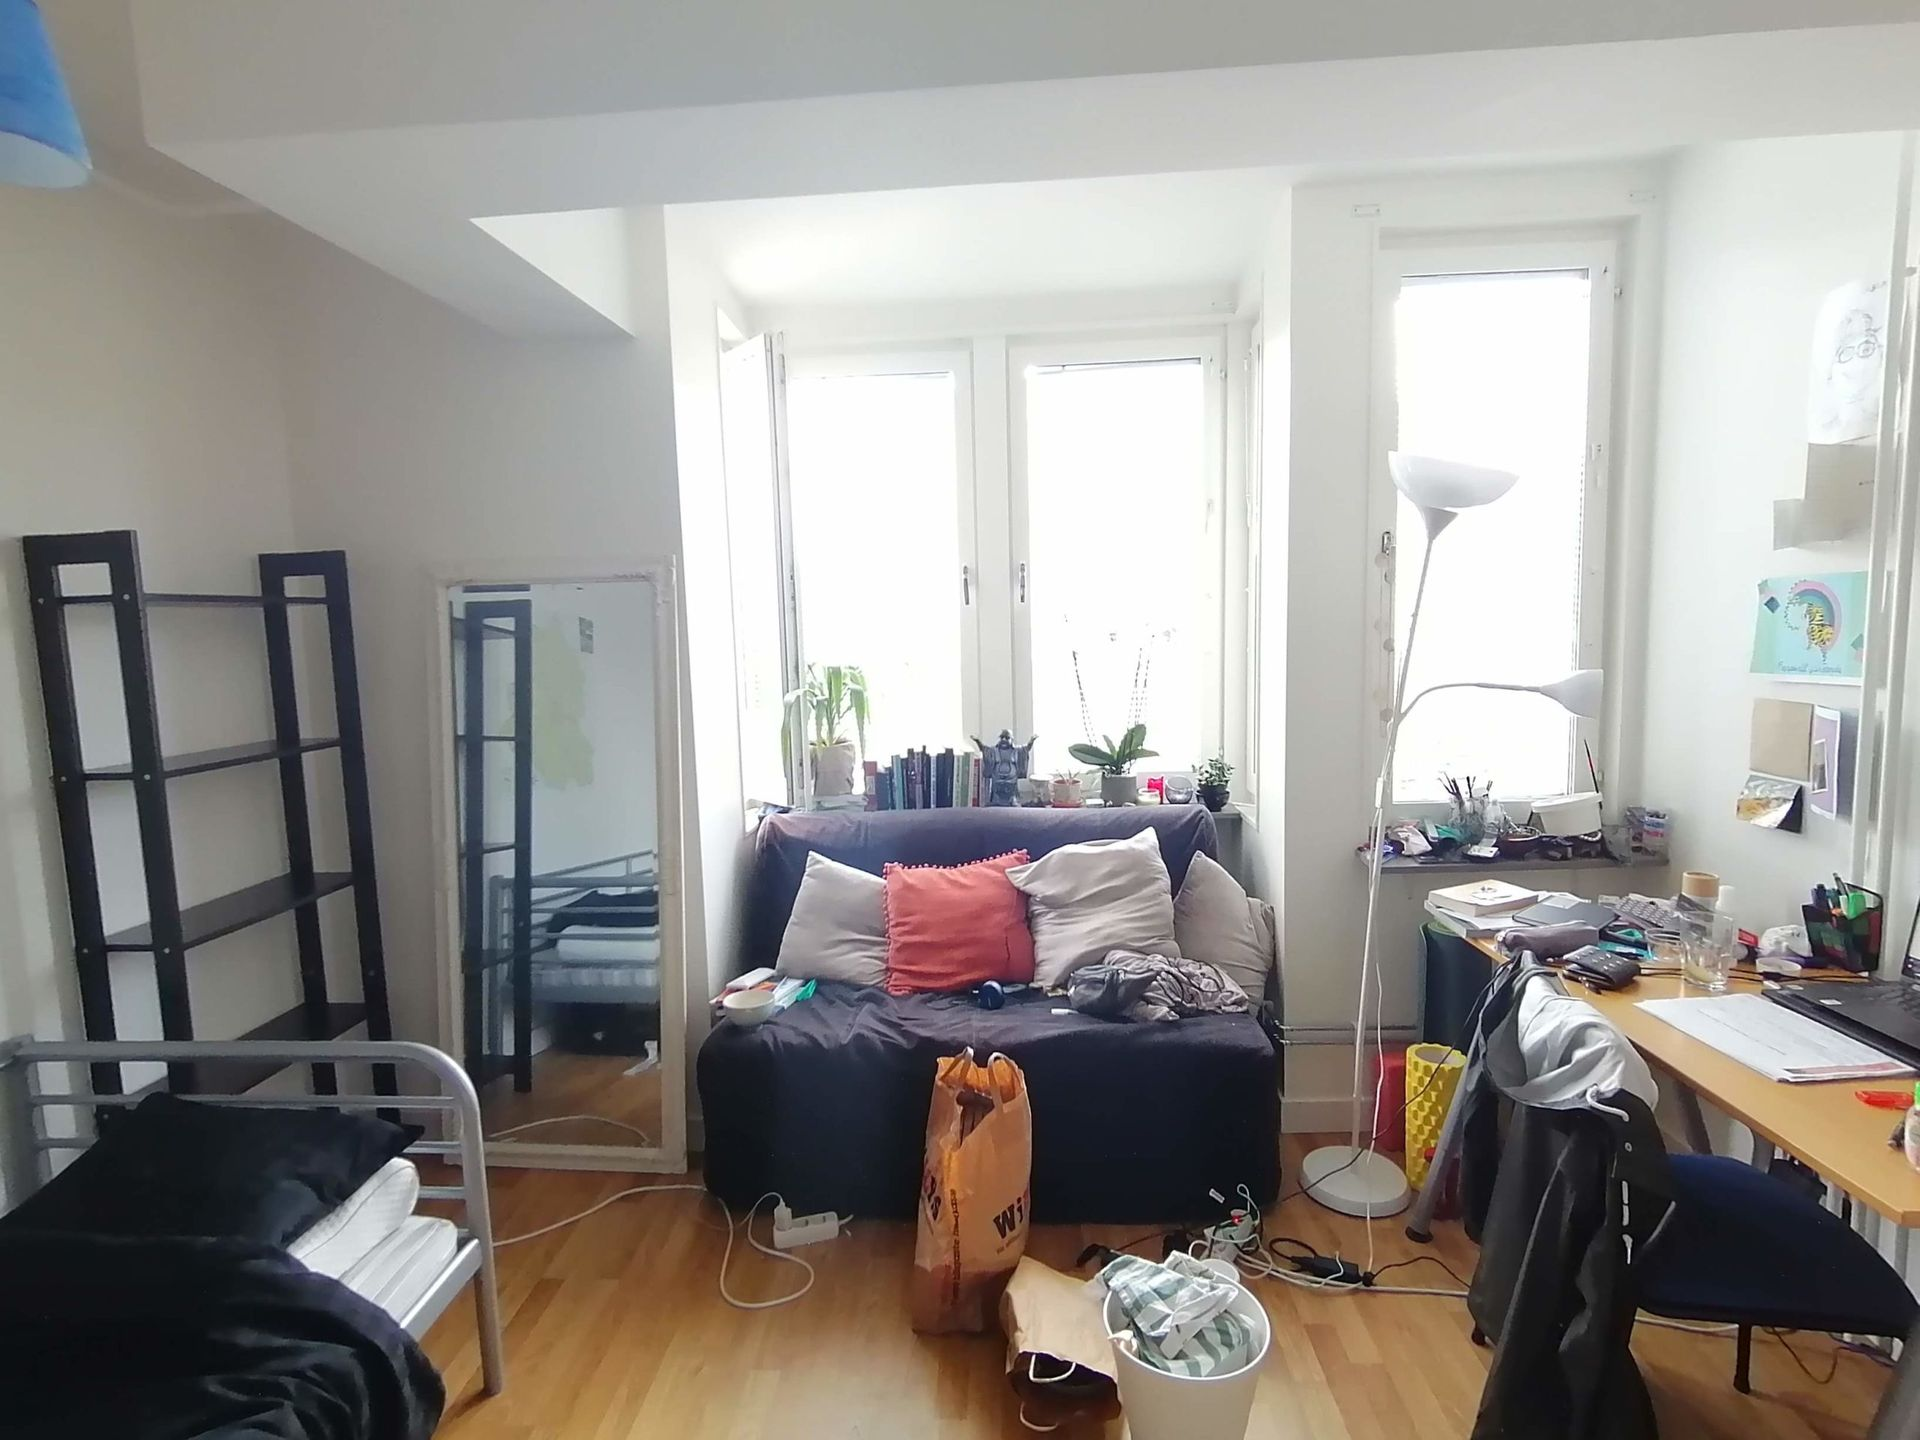 A cluttered studio apartment